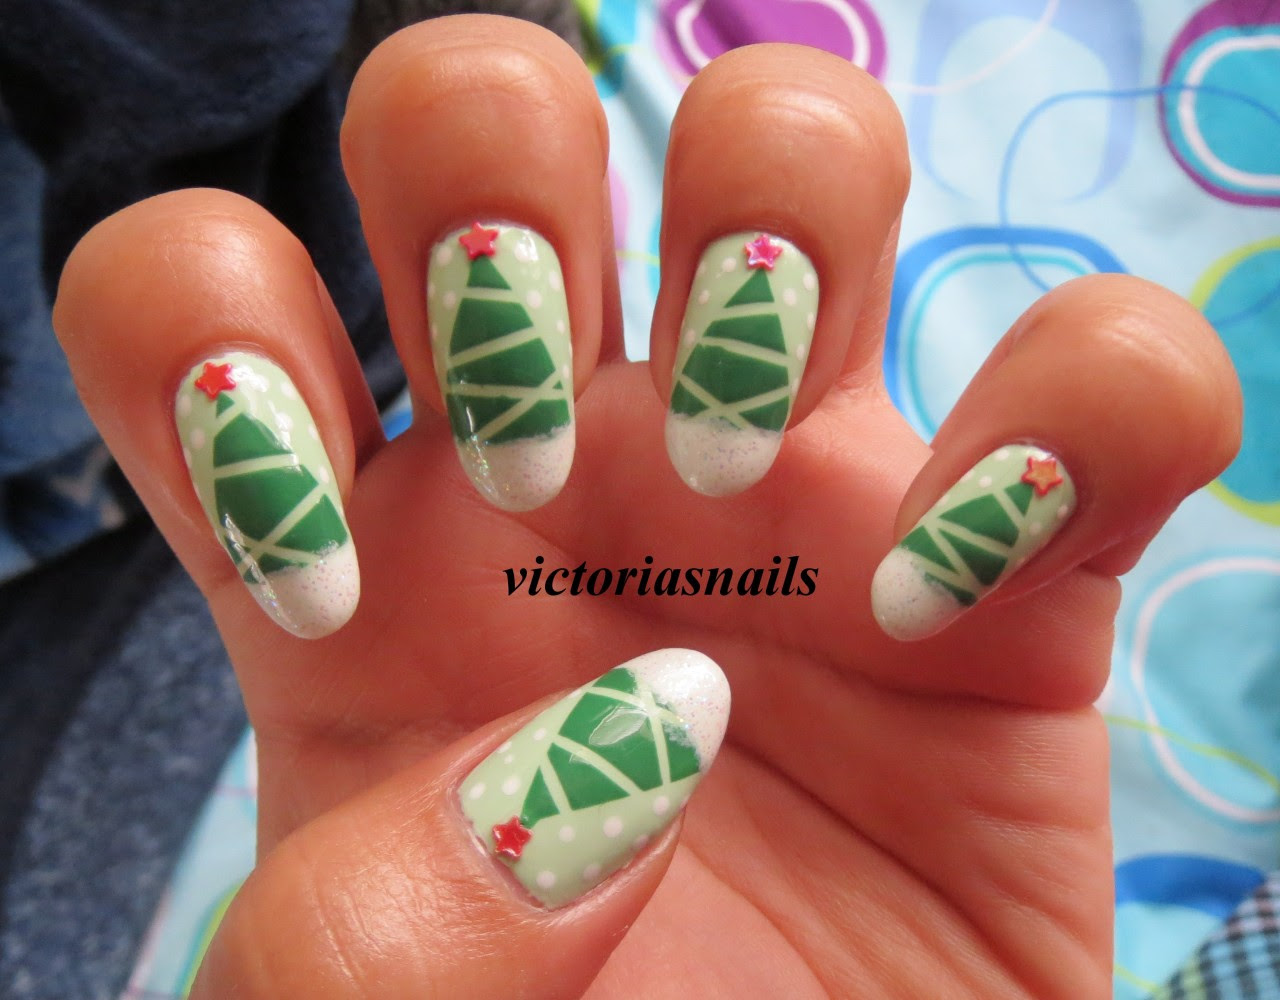 Merry Christmas! Colors used: Essie - Pretty Edgy Sally Hansen - Mint Sorbet Wet N' Wild - French White, Hallucinate